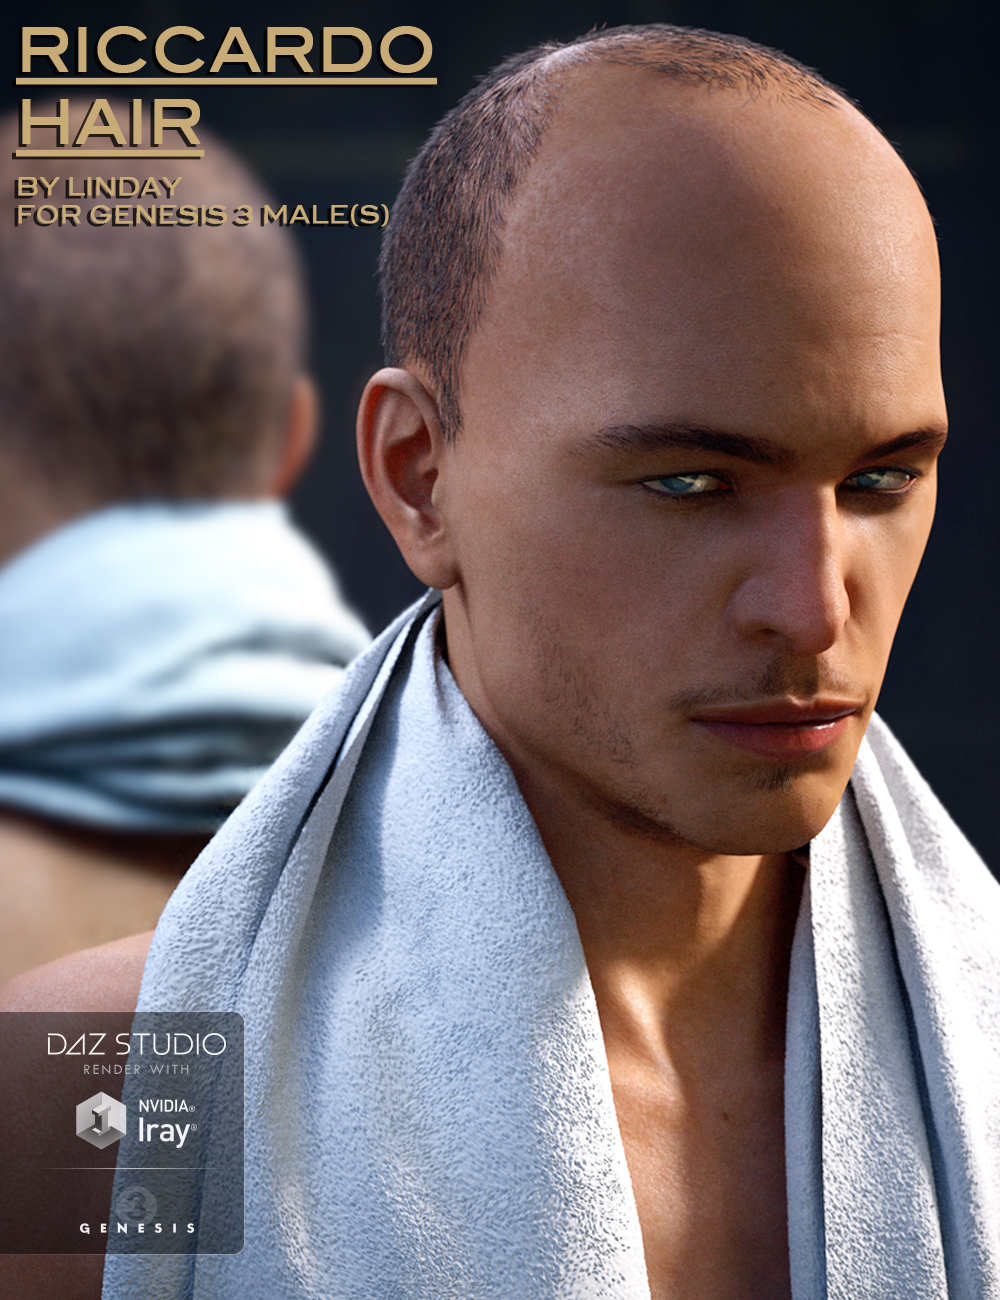 Riccardo Hair for Genesis 3 Male(s) by: Linday, 3D Models by Daz 3D